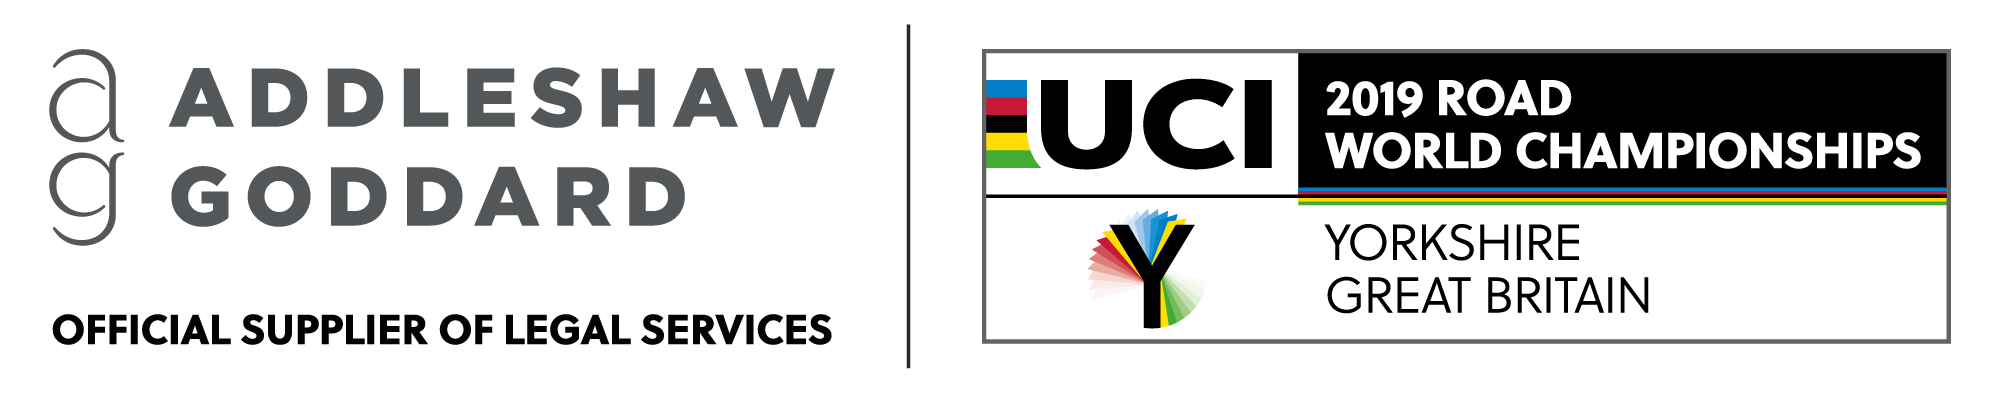 Addleshaw Goddard official lawyer to UCI Road World Champs